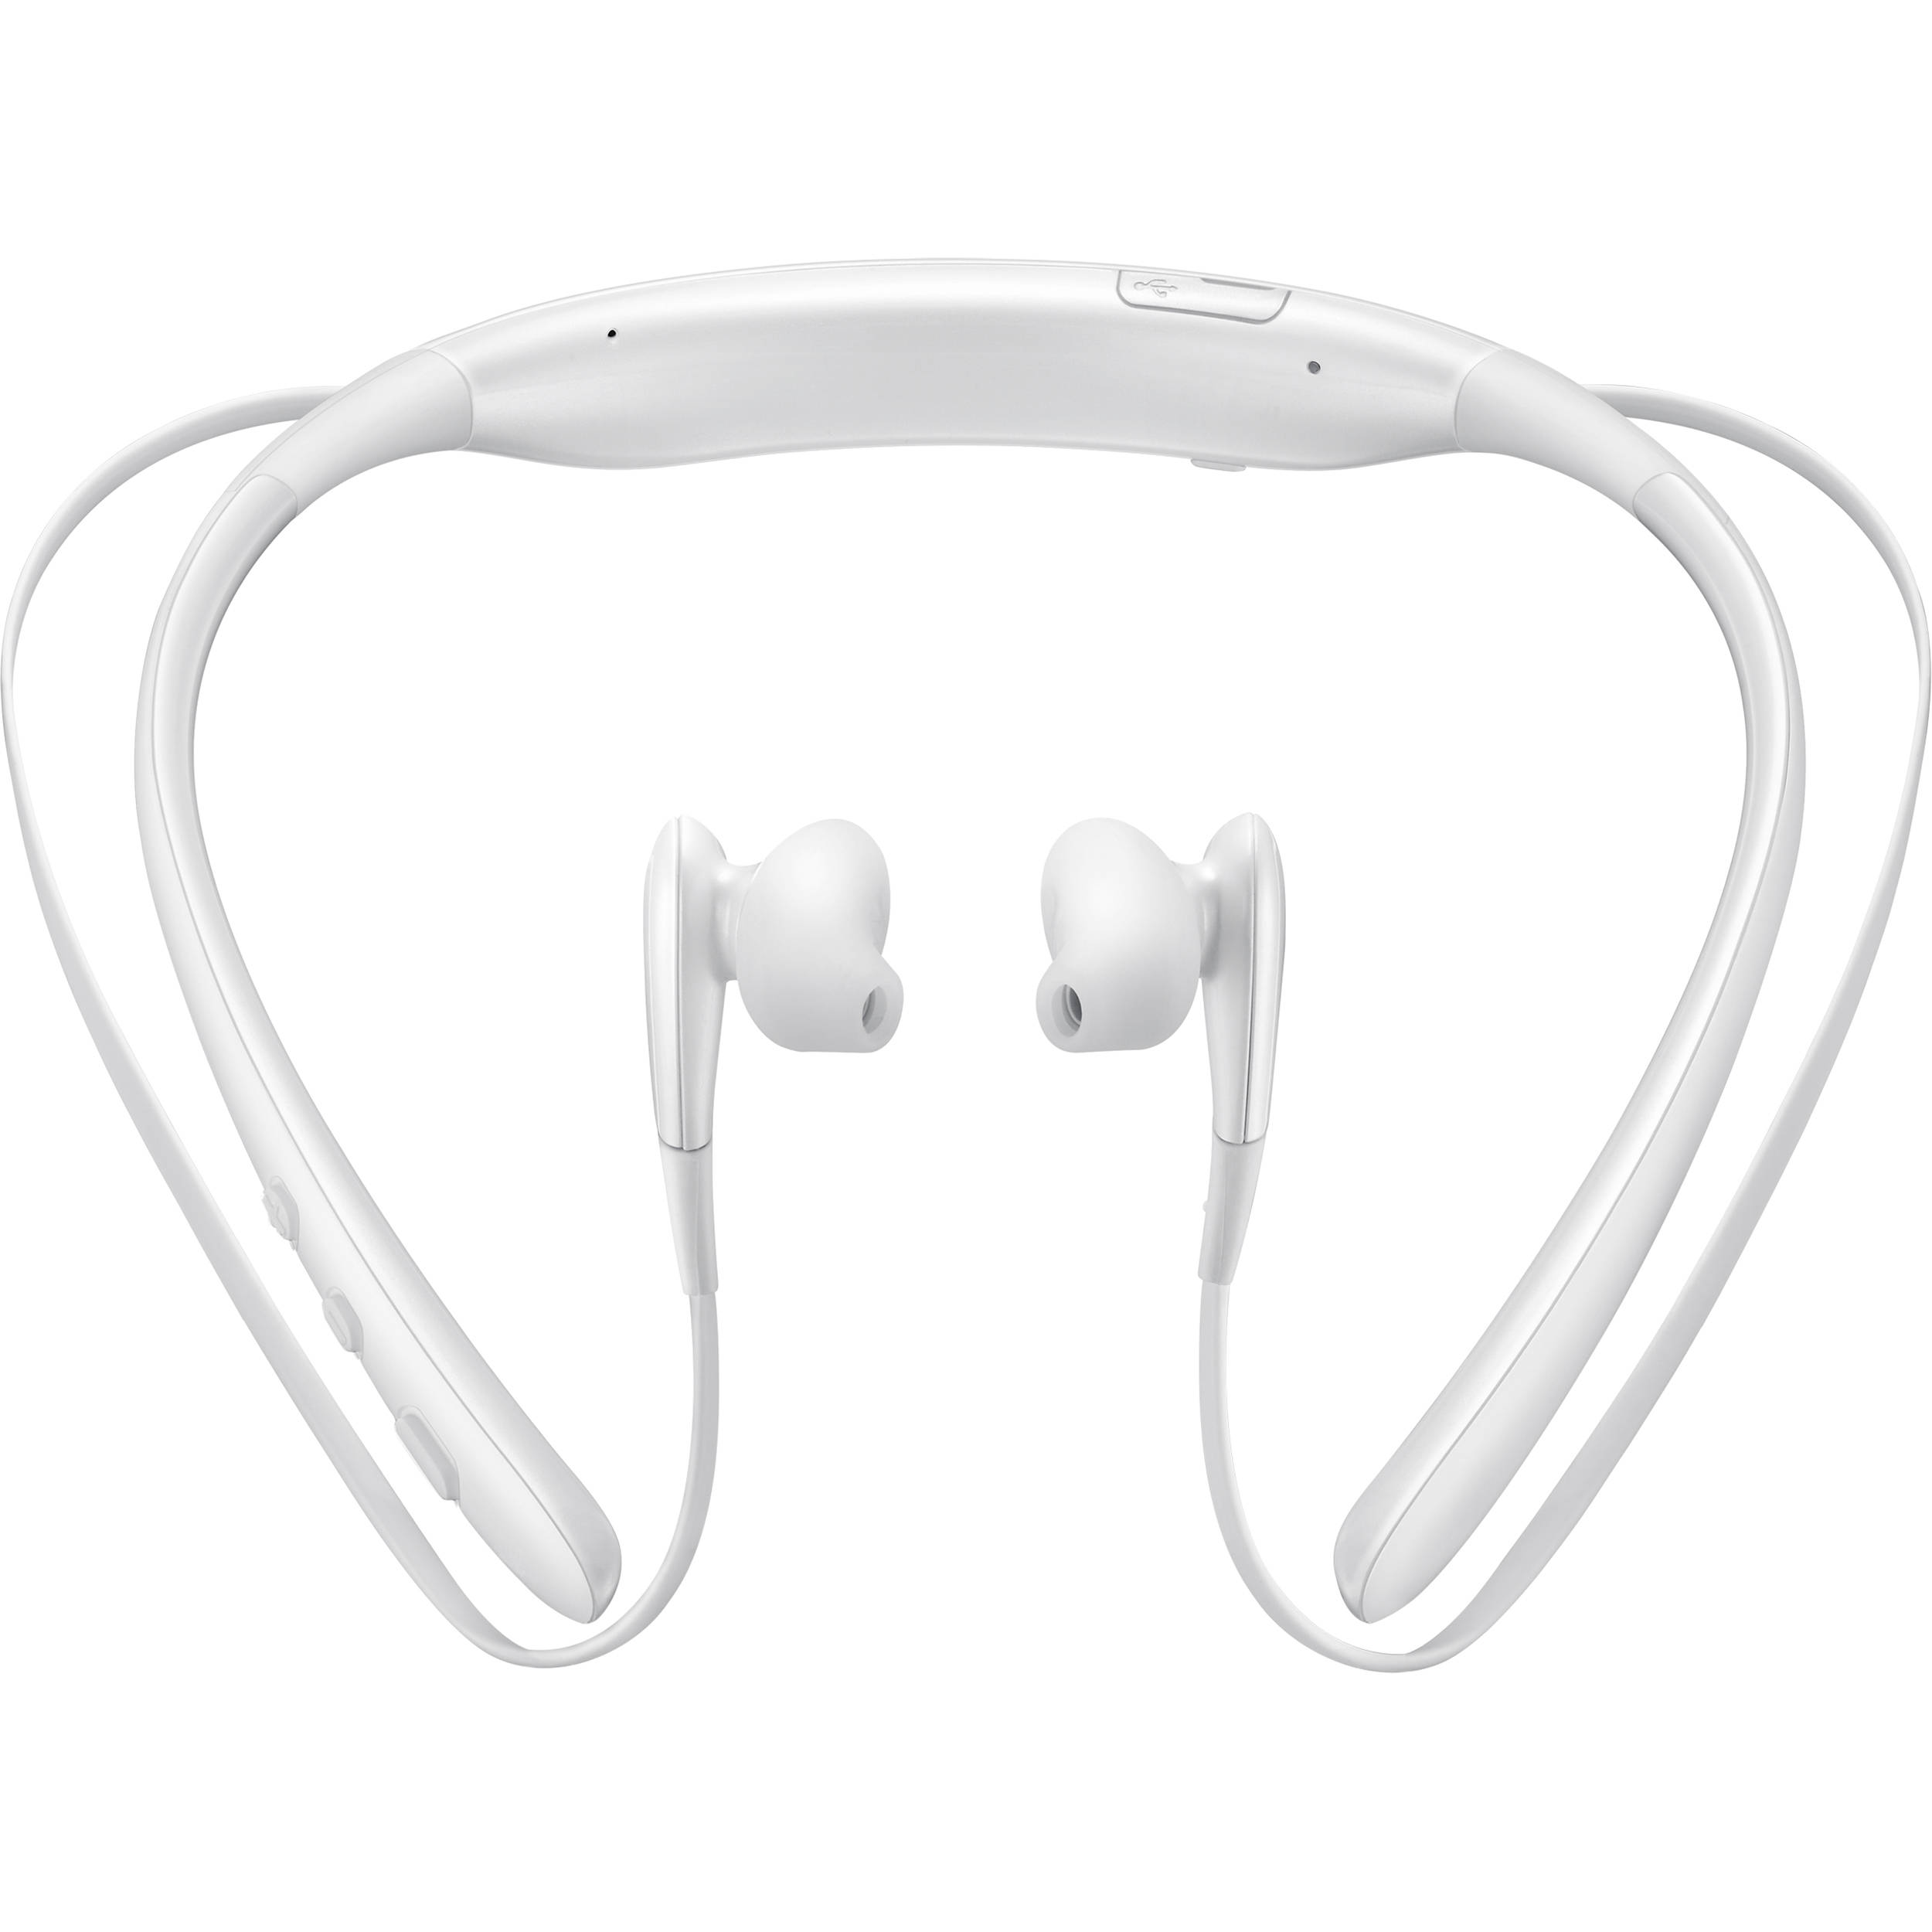 Samsung Level U Wireless Bluetooth Headphones Eo Bg920bwebus B H